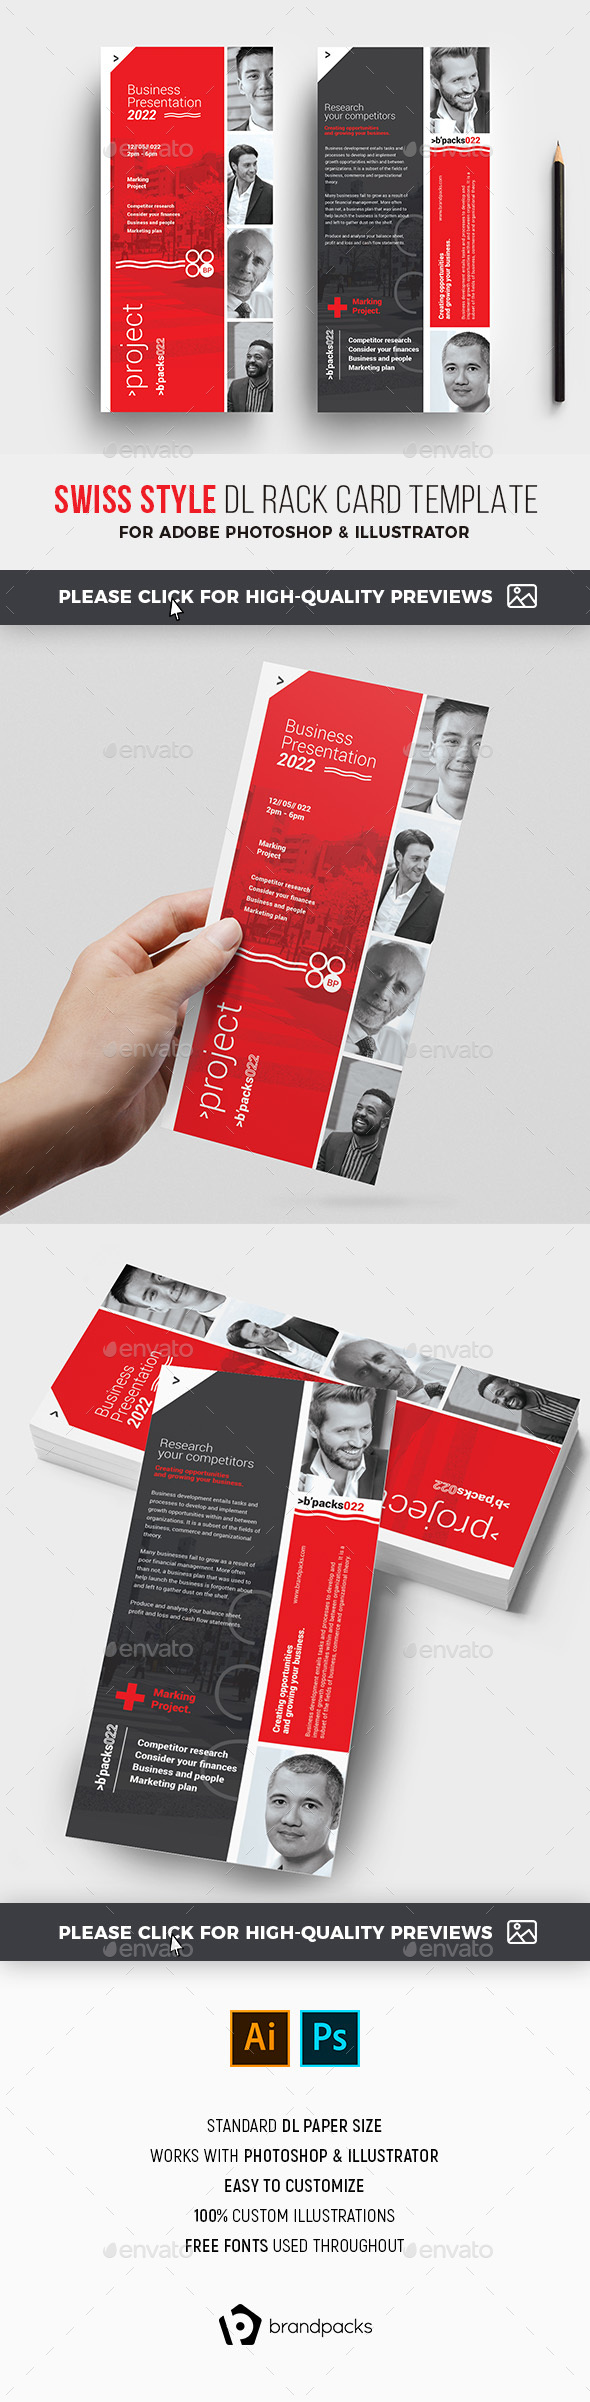 Flyers PSD – Swiss Style DL Card Template – Download